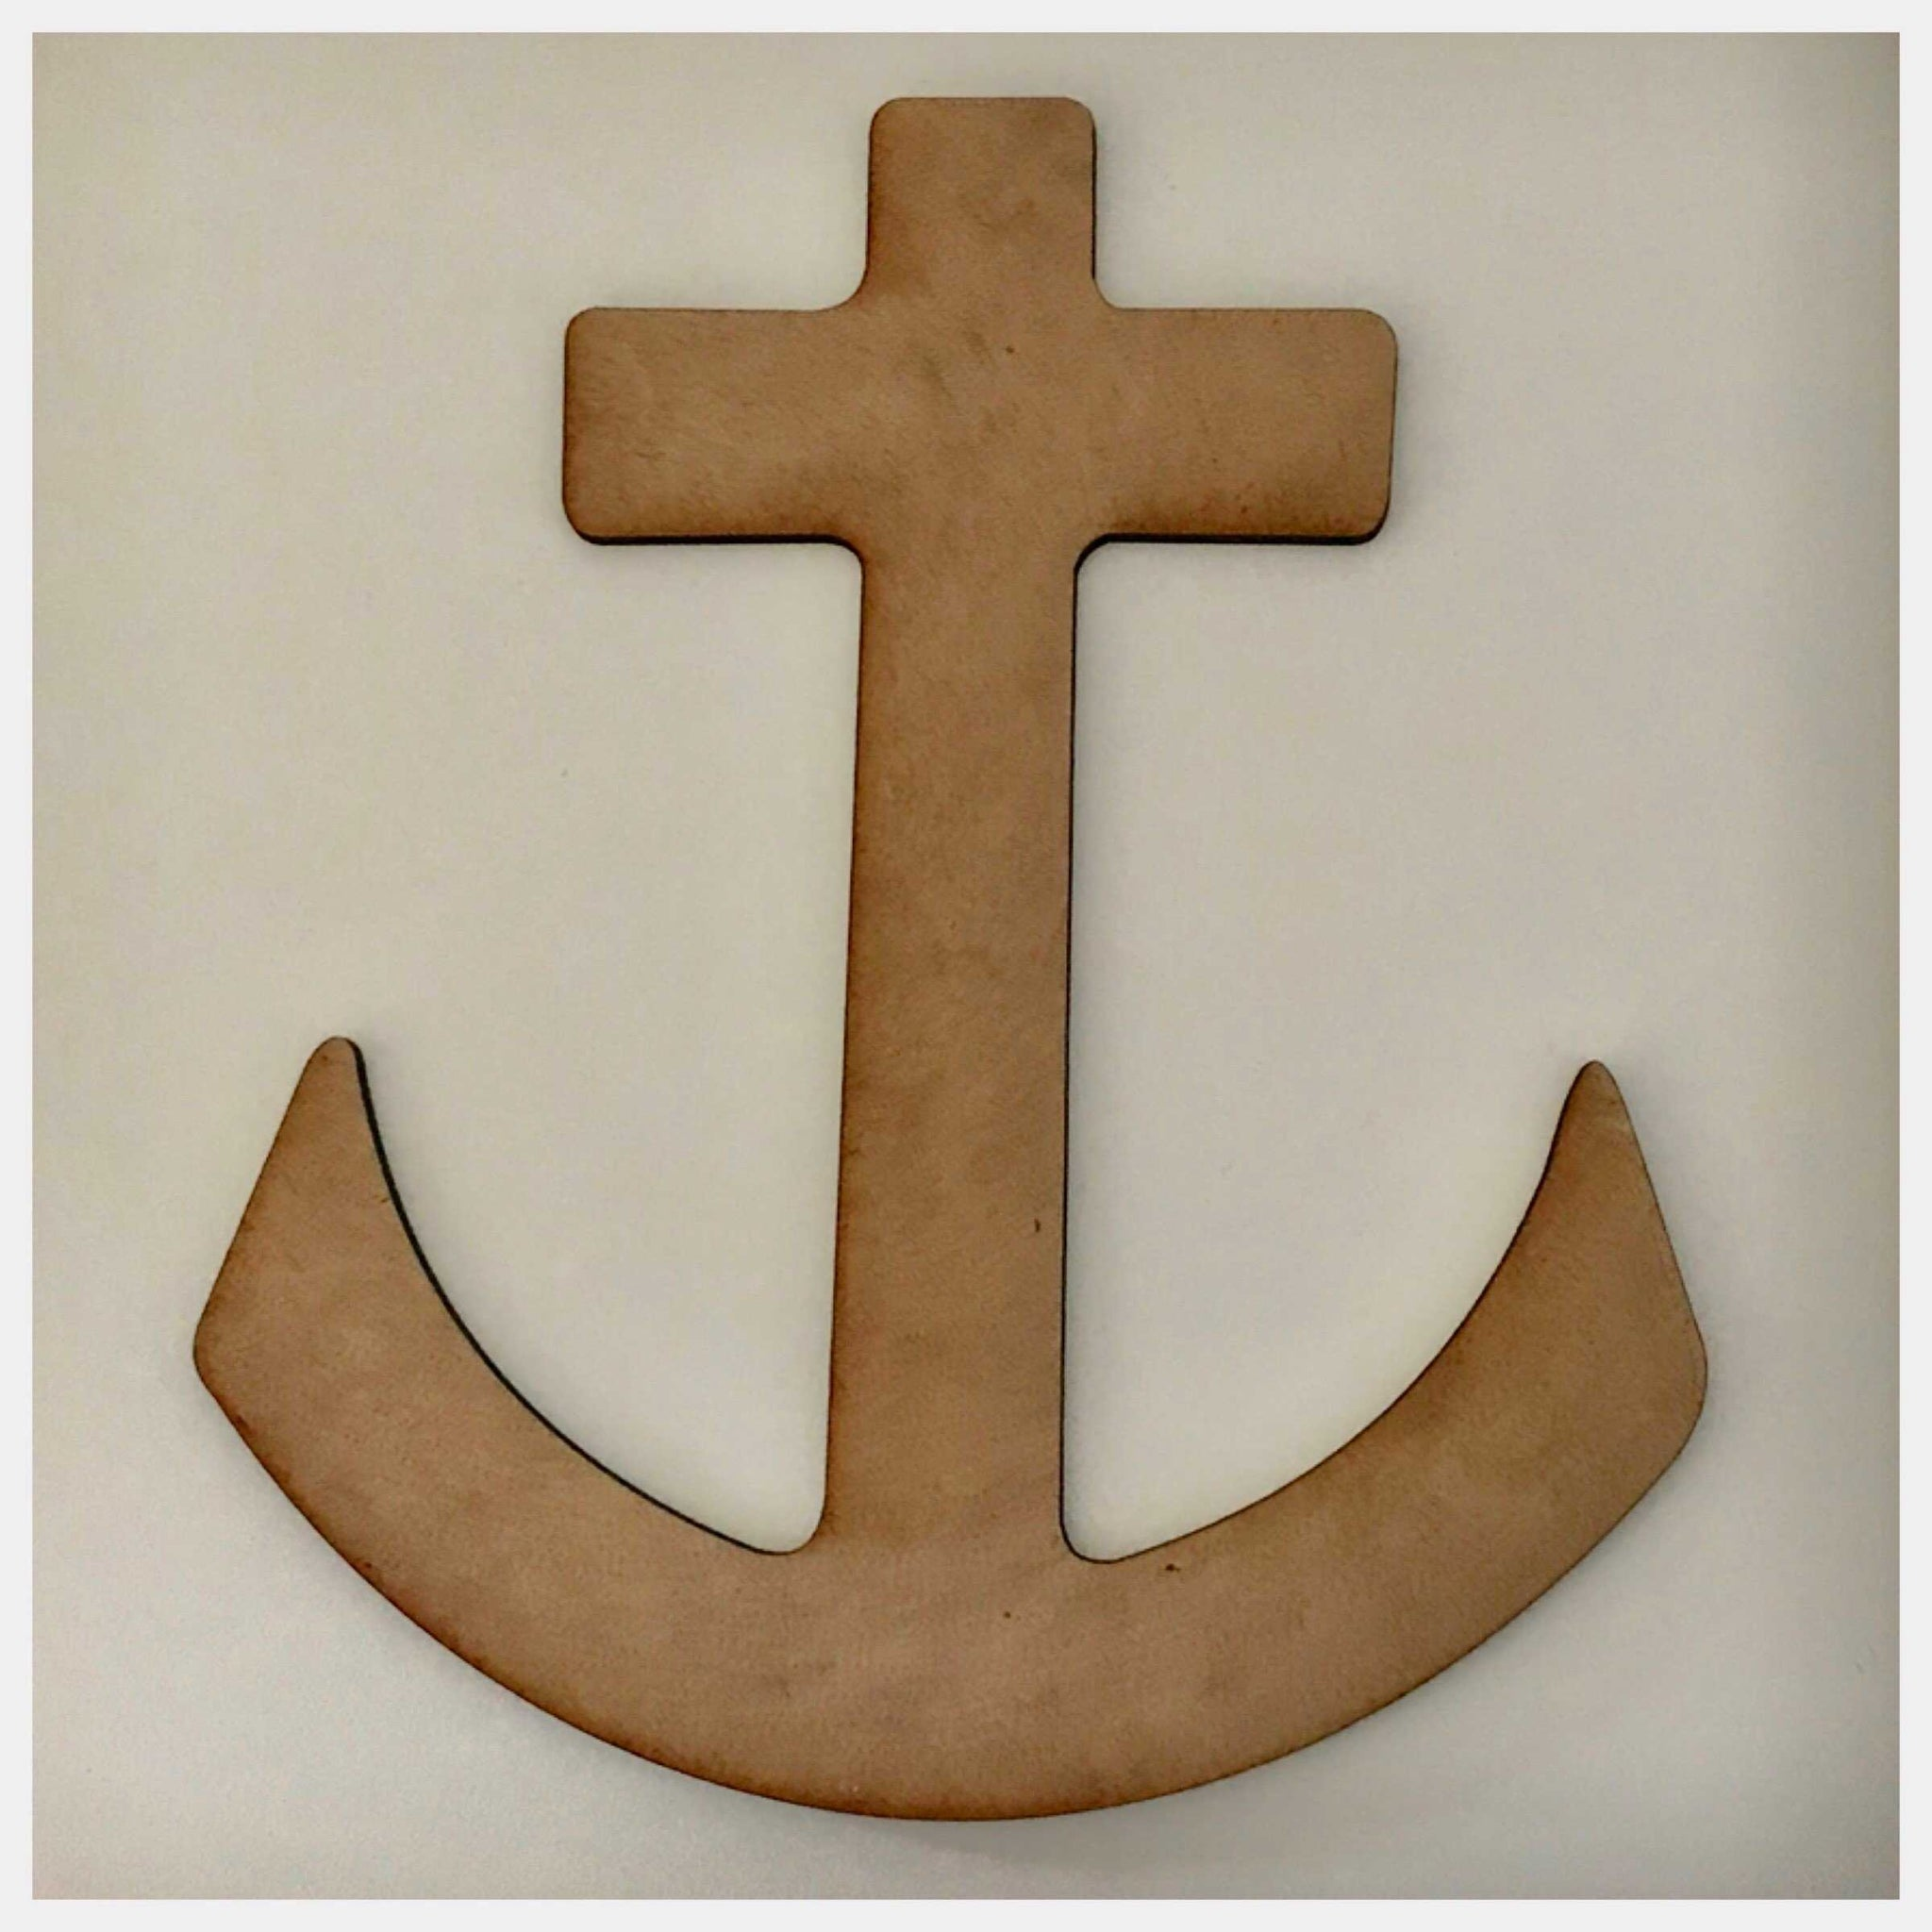 Cross Anchor MDF Shape DIY Raw Cut Out Art Religious Craft Decor Other Home Décor The Renmy Store